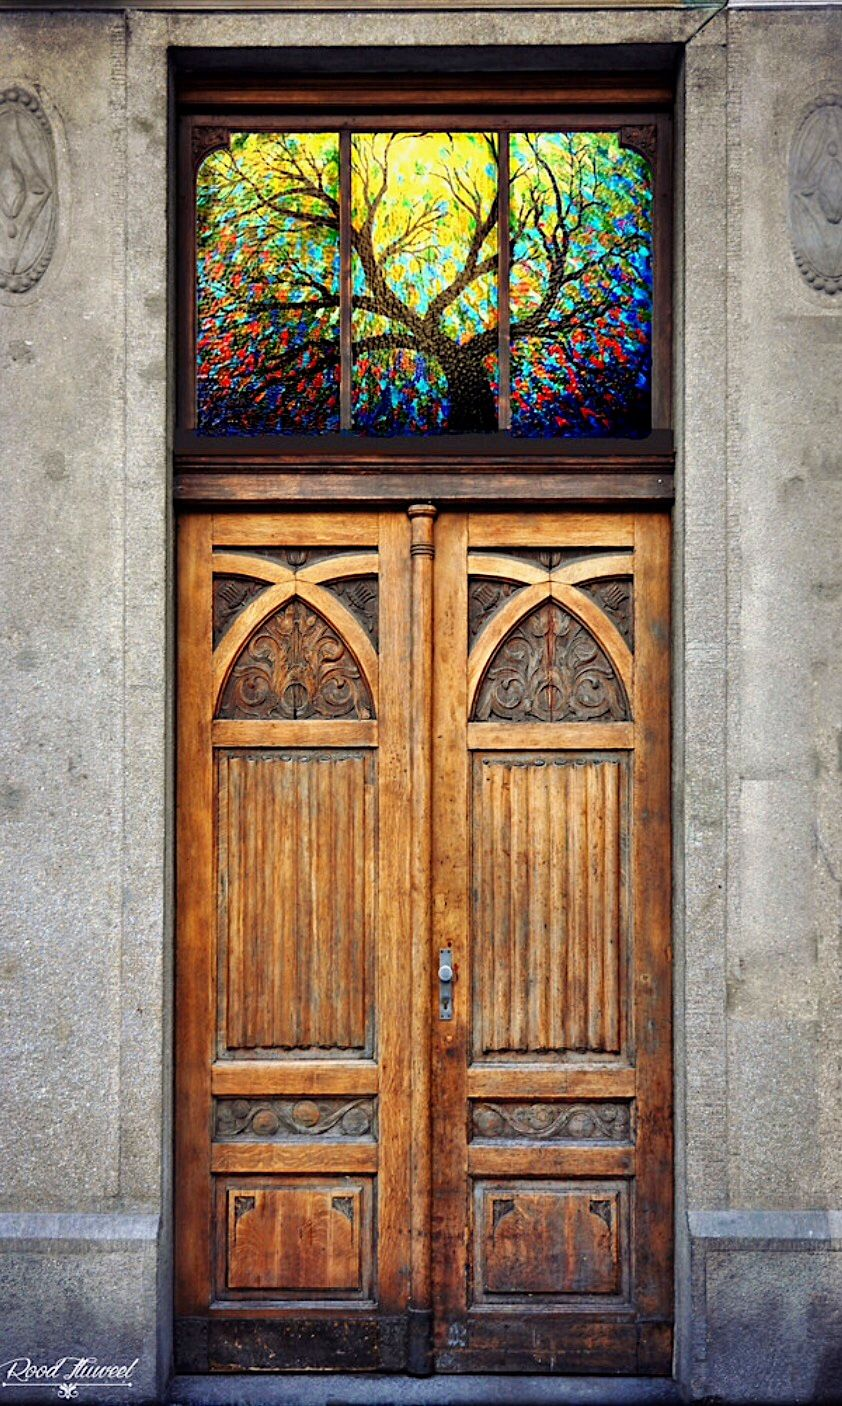 Stained Glass Over A Carved Wooden Door Location Unknown